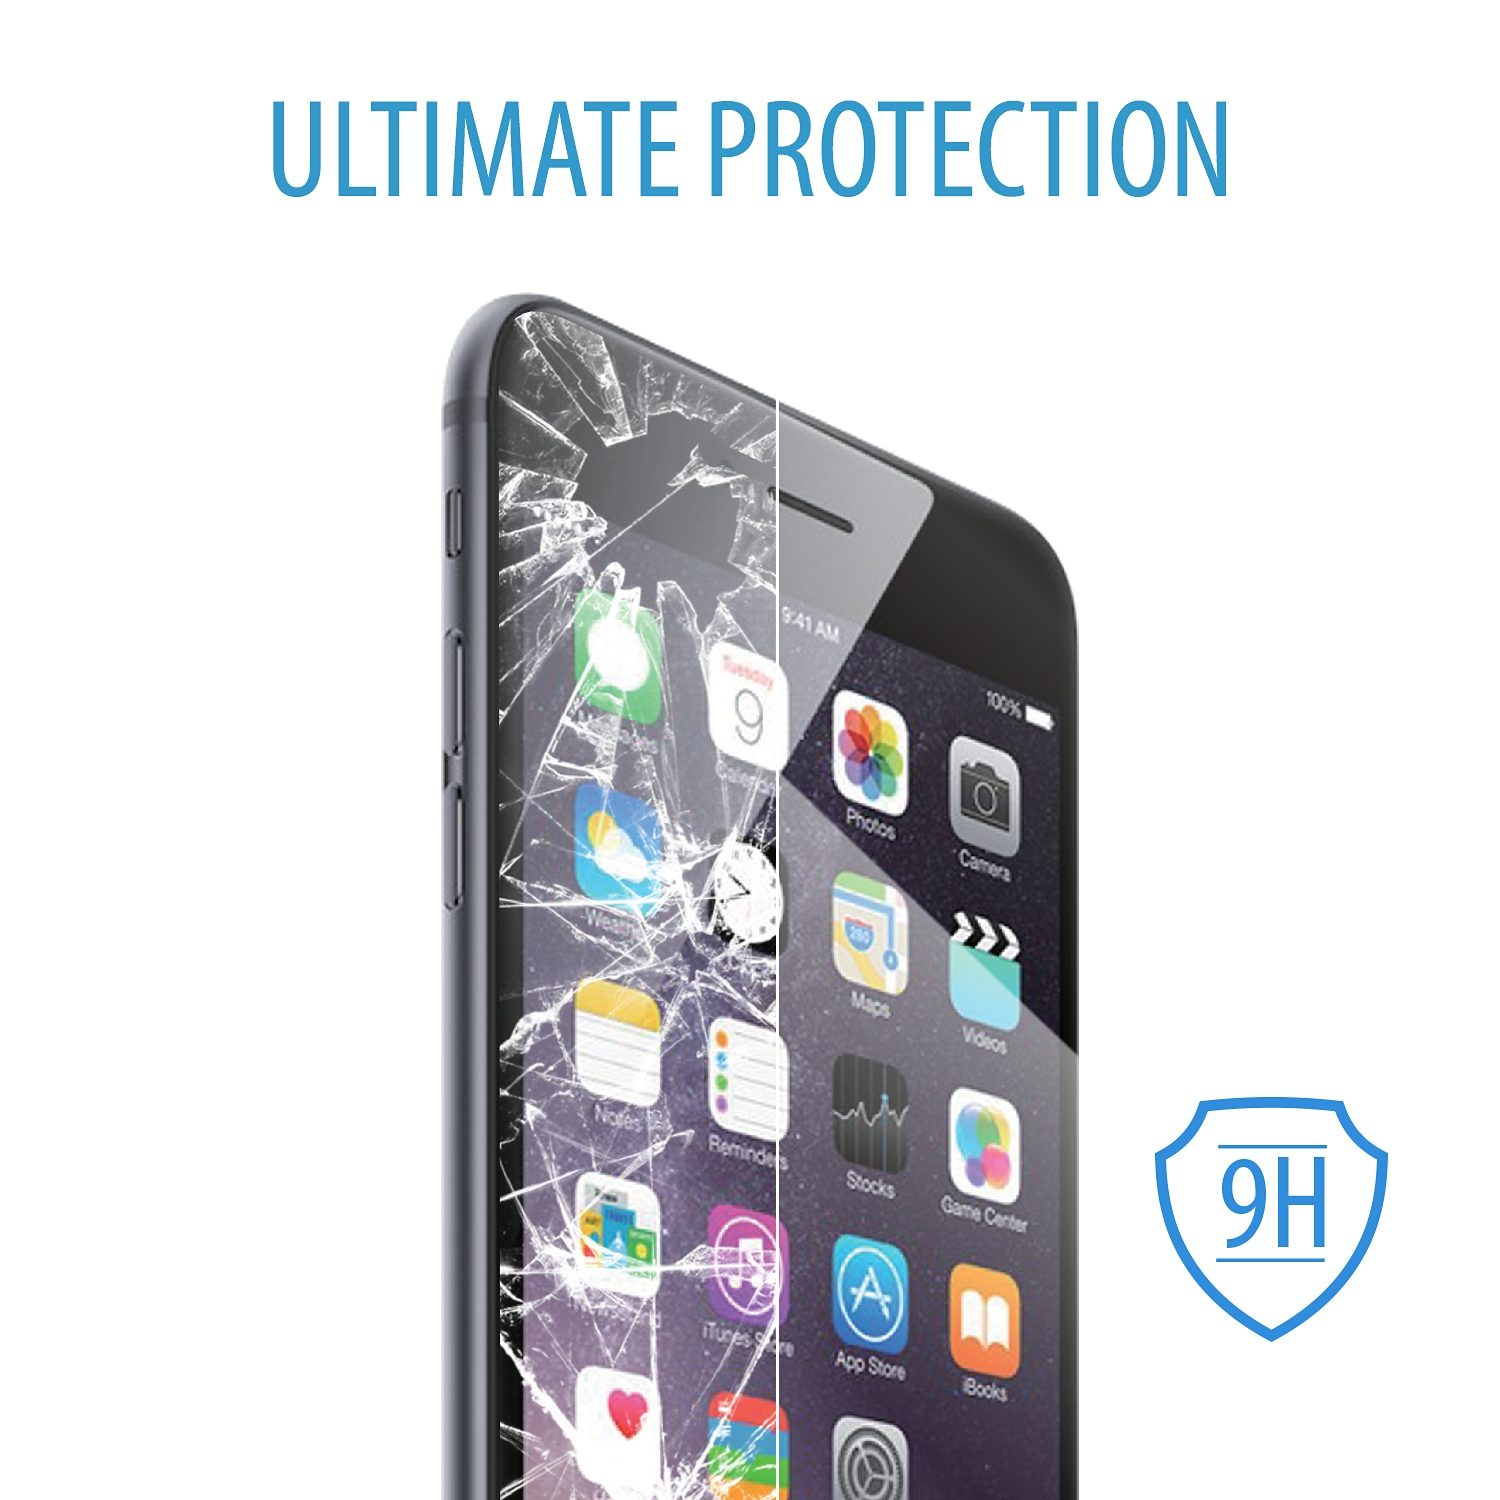 V7 Schutz & Sicherheit »iPhone 6 PLUS SCREENPROTECT«